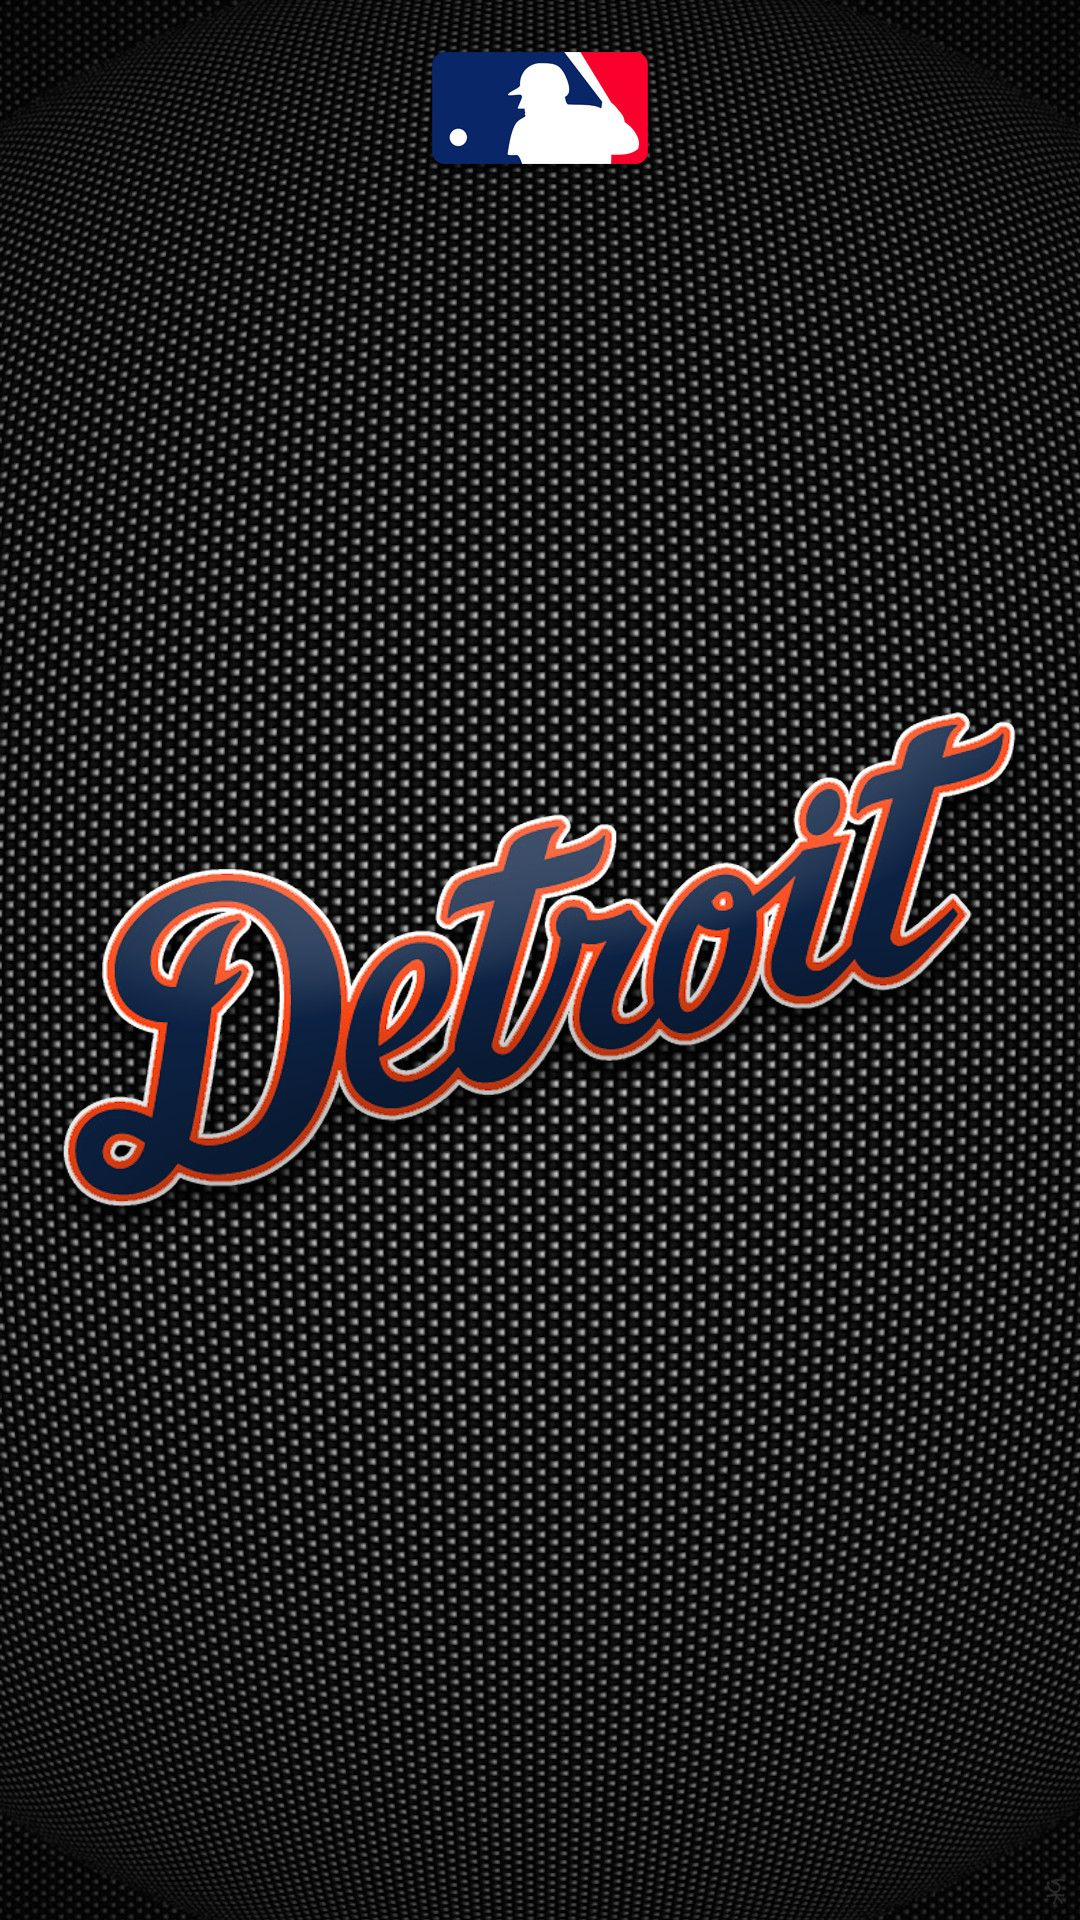 1080x1920 Detroit Tigers iPhone Wallpaper (69+ images)